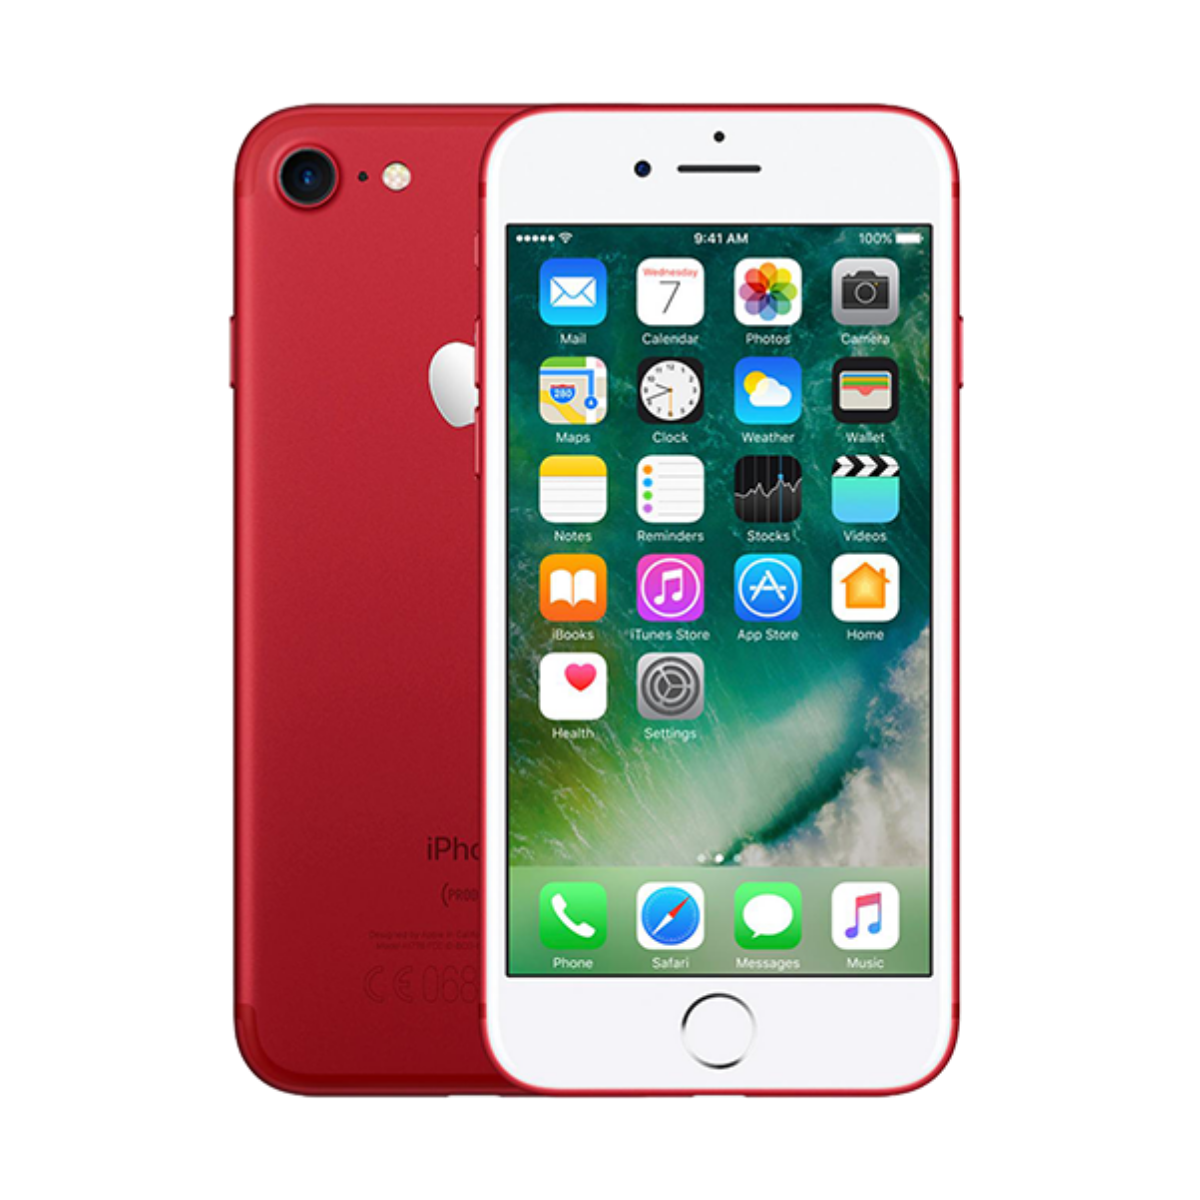 Sim Free iPhone 7 128GB Unlocked Mobile Phone - Product Red